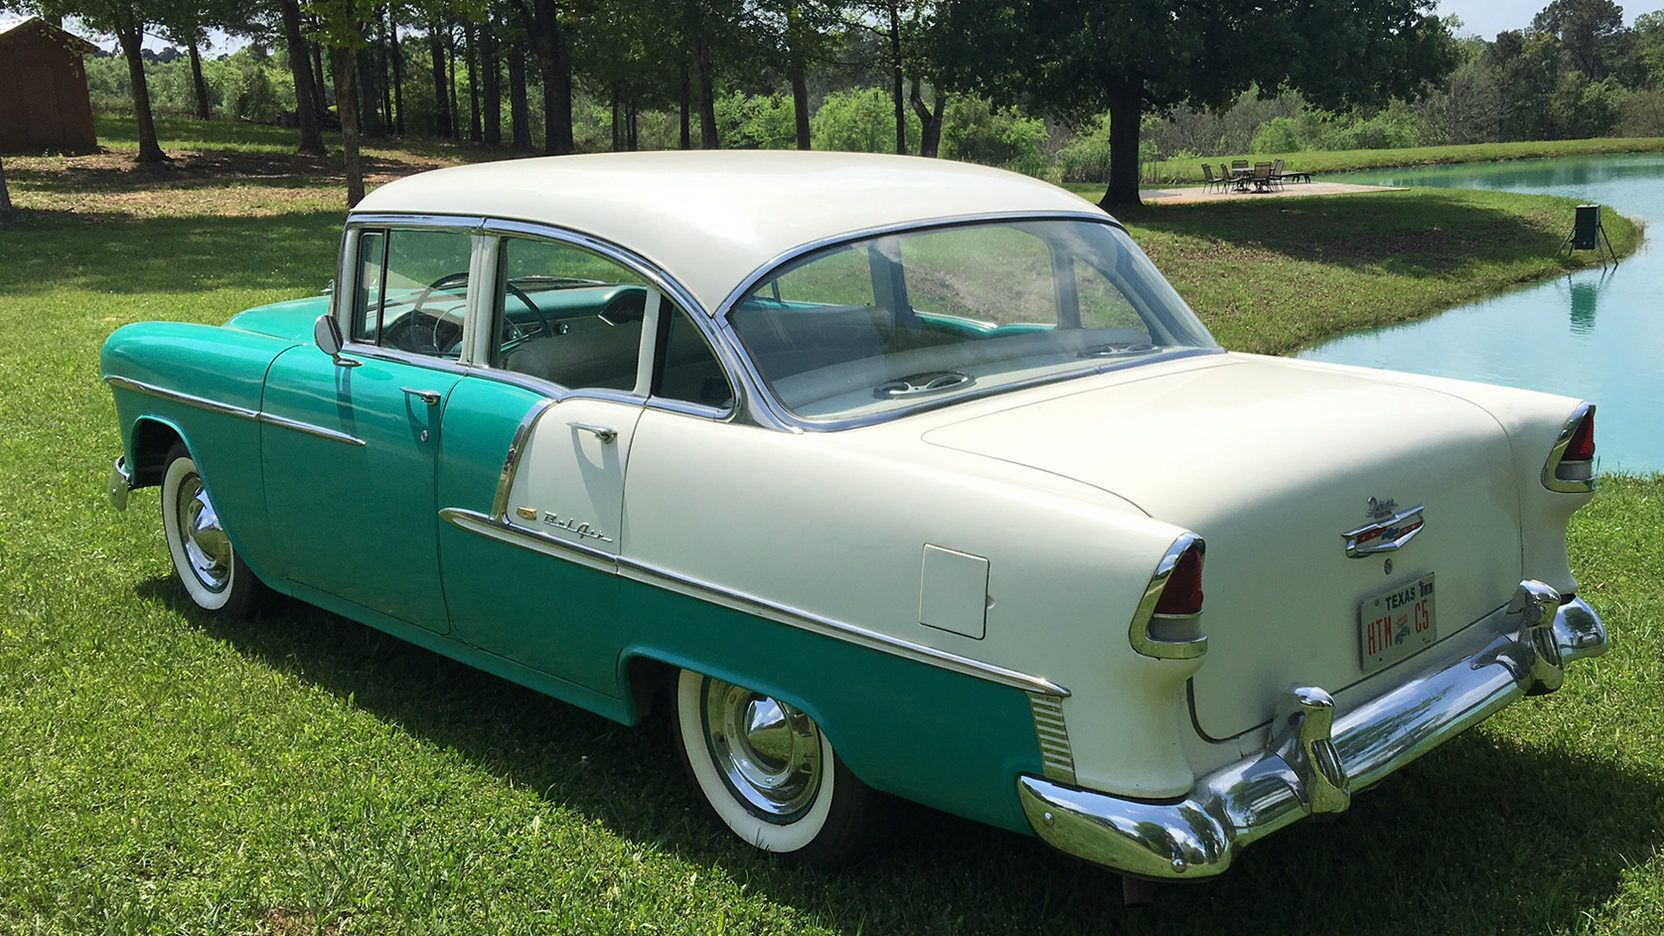 1955 Chevrolet Bel Air (With images) Chevrolet bel air